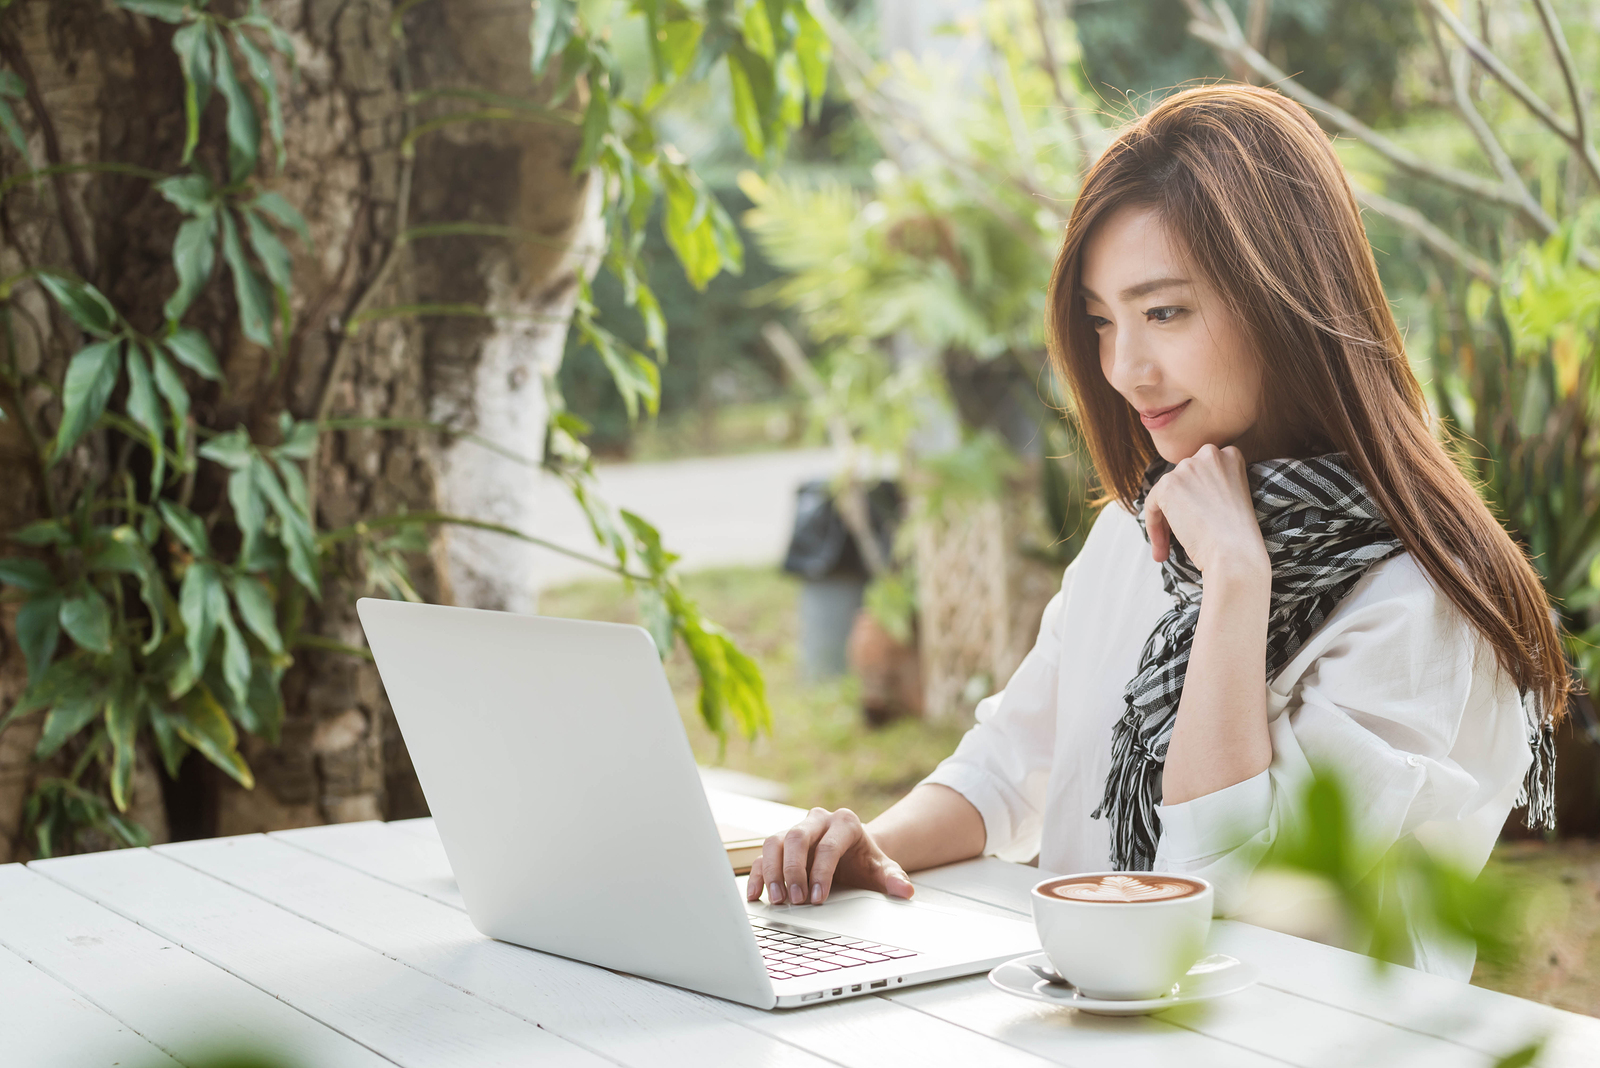 Five Myths about the Freelance Life